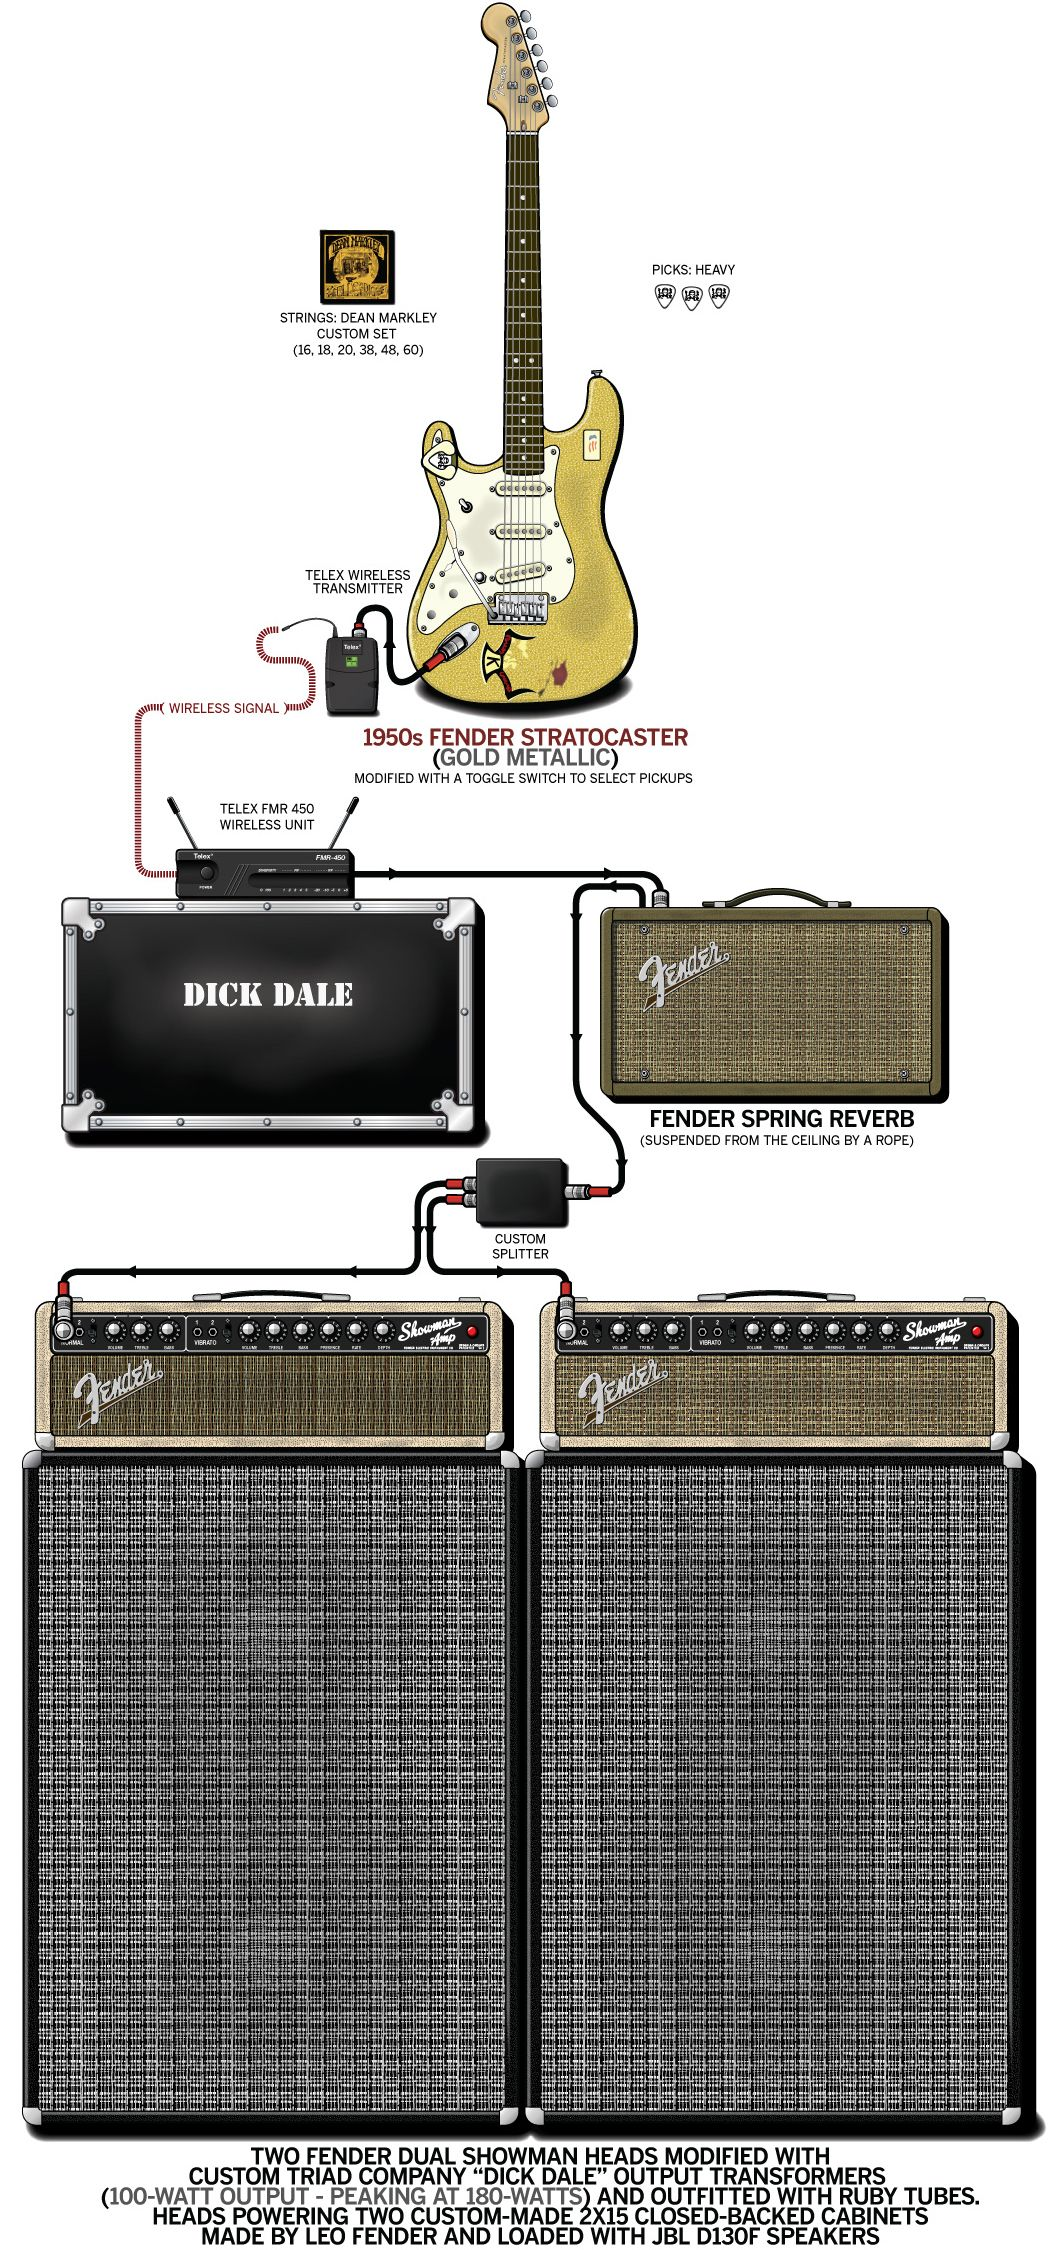 dick dale 39 s rig musician dreams amplification in 2019. Black Bedroom Furniture Sets. Home Design Ideas